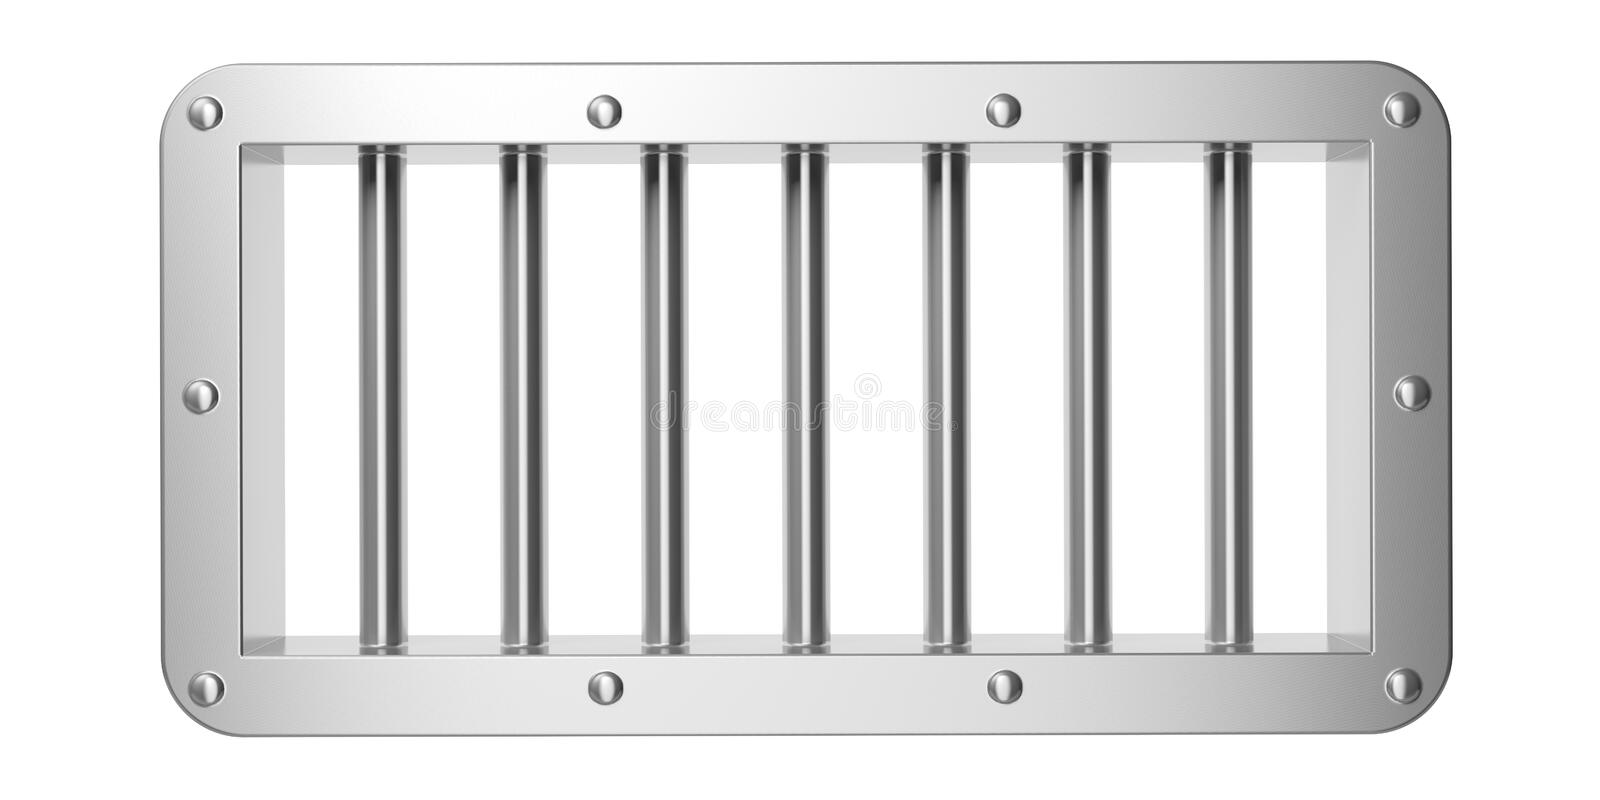 Prison, jail window with industrial silver bars isolated on white background. 3d illustration vector illustration